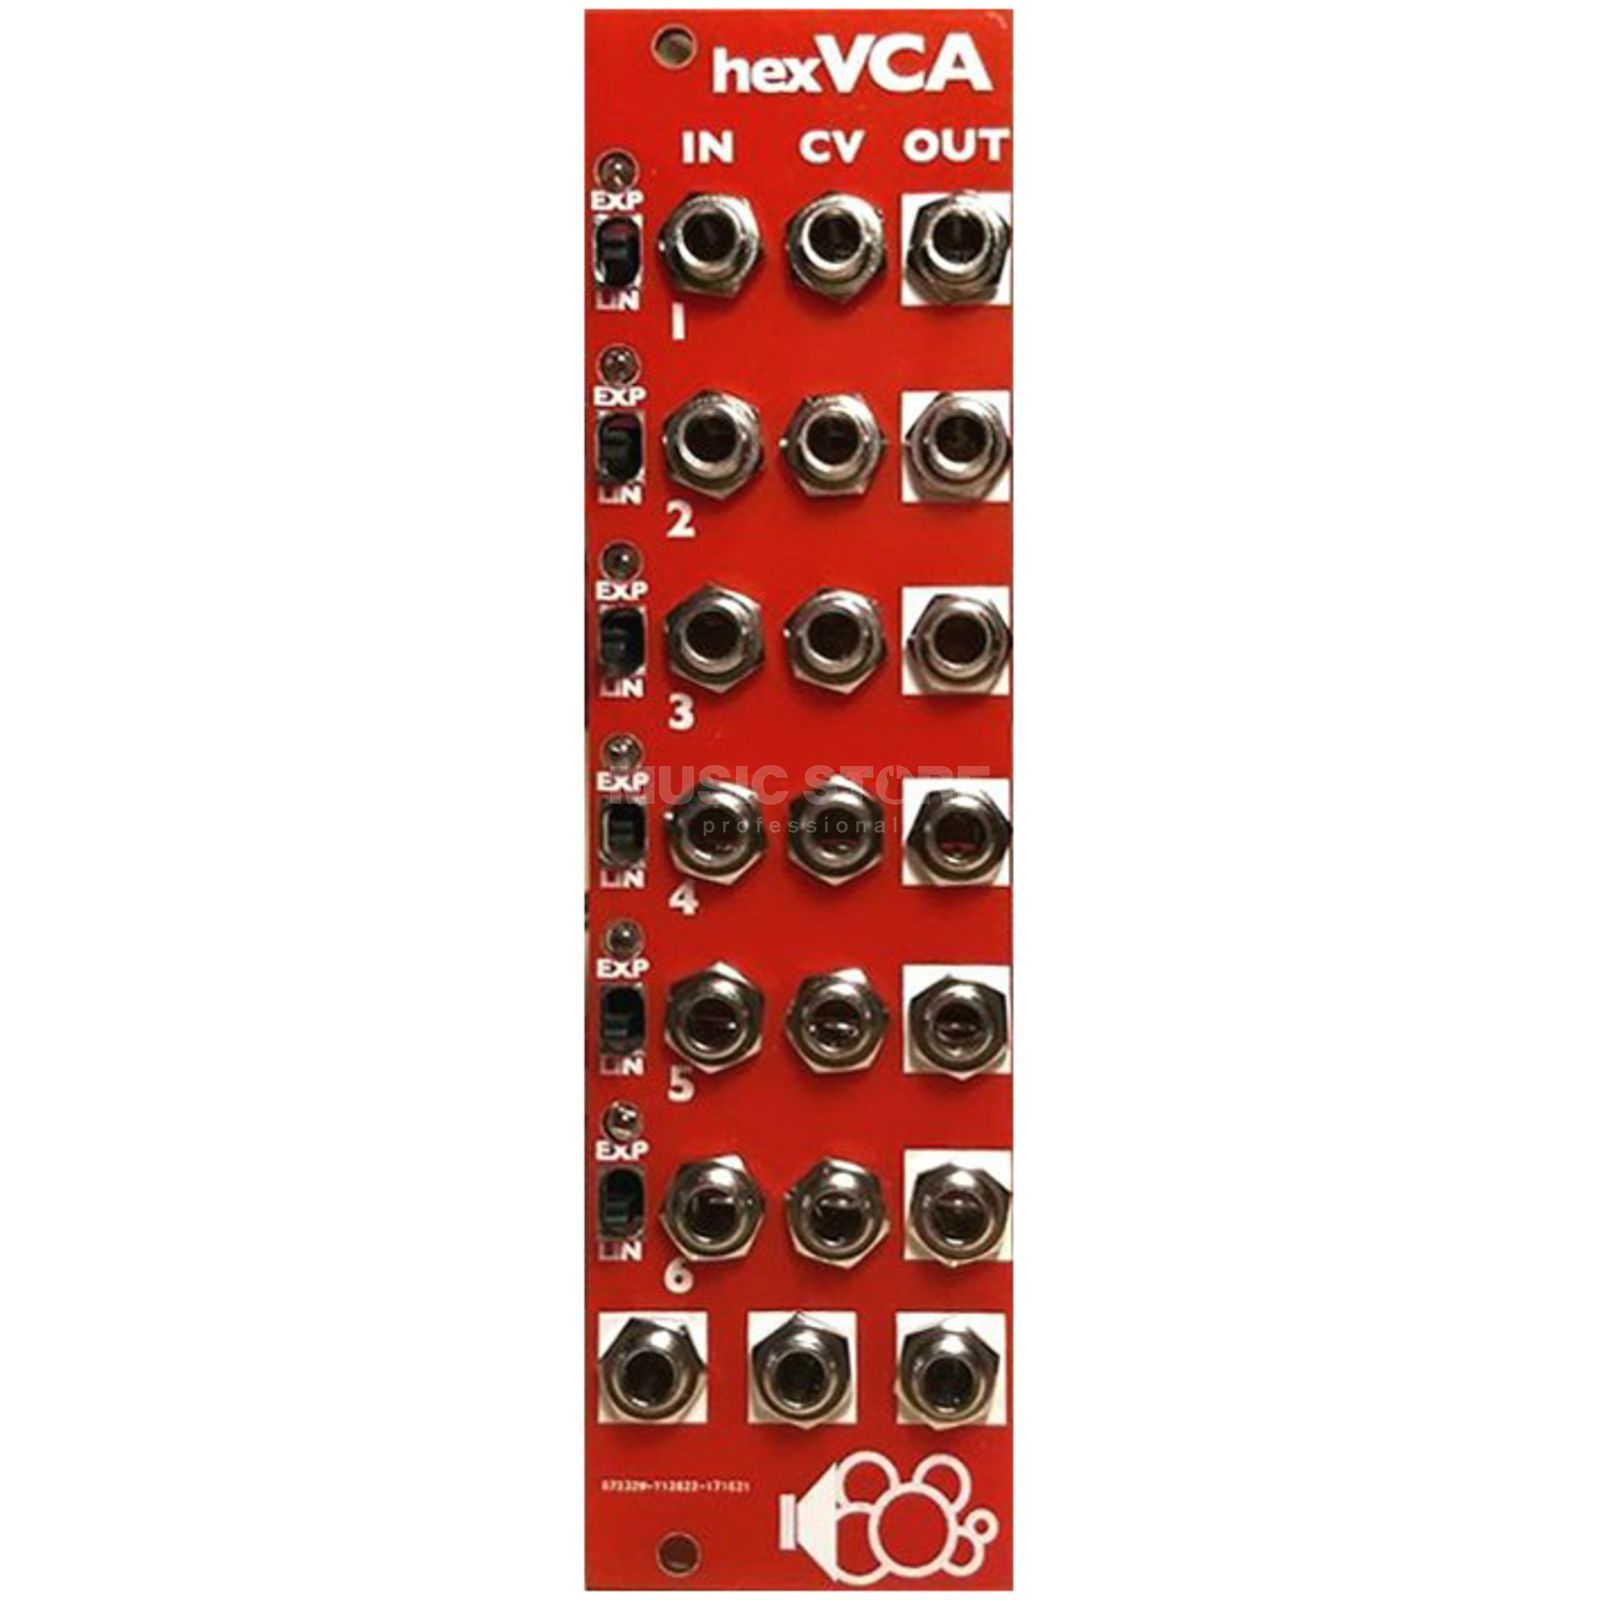 Bubblesound Instruments HEXvca Product Image